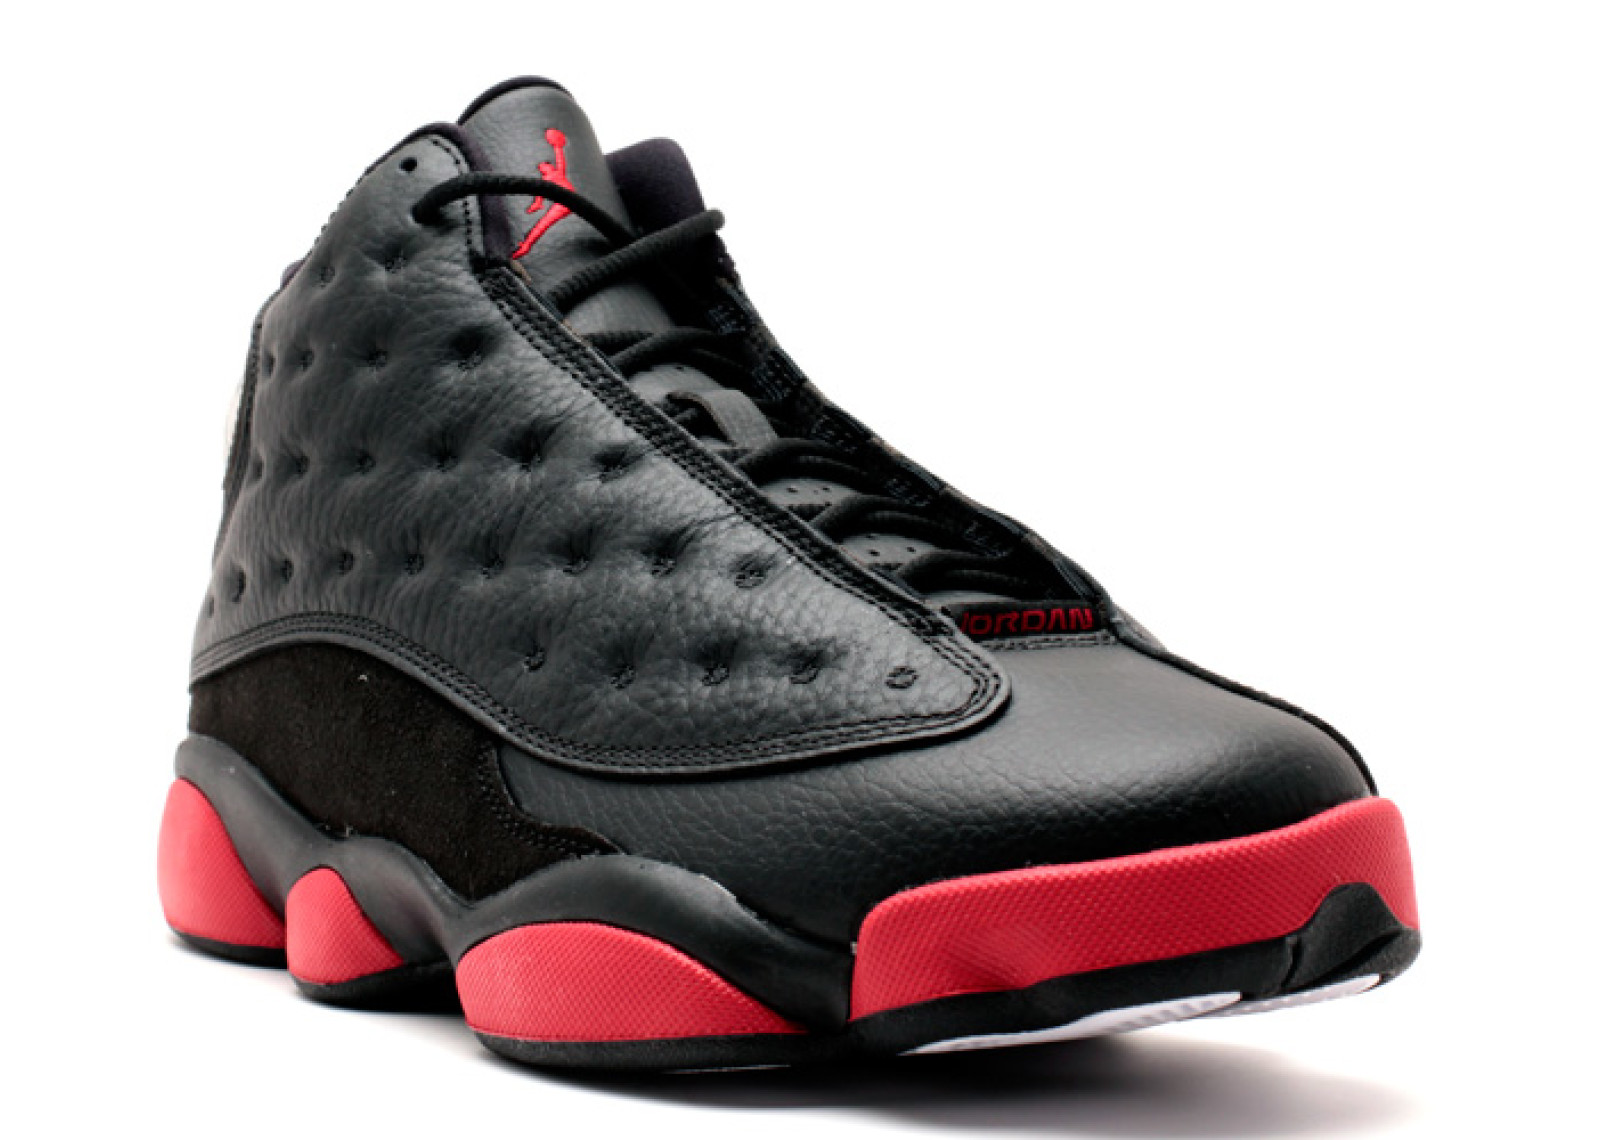 a086b5e00203 aliexpress air jordan 13 bred 8e2e7 fb994